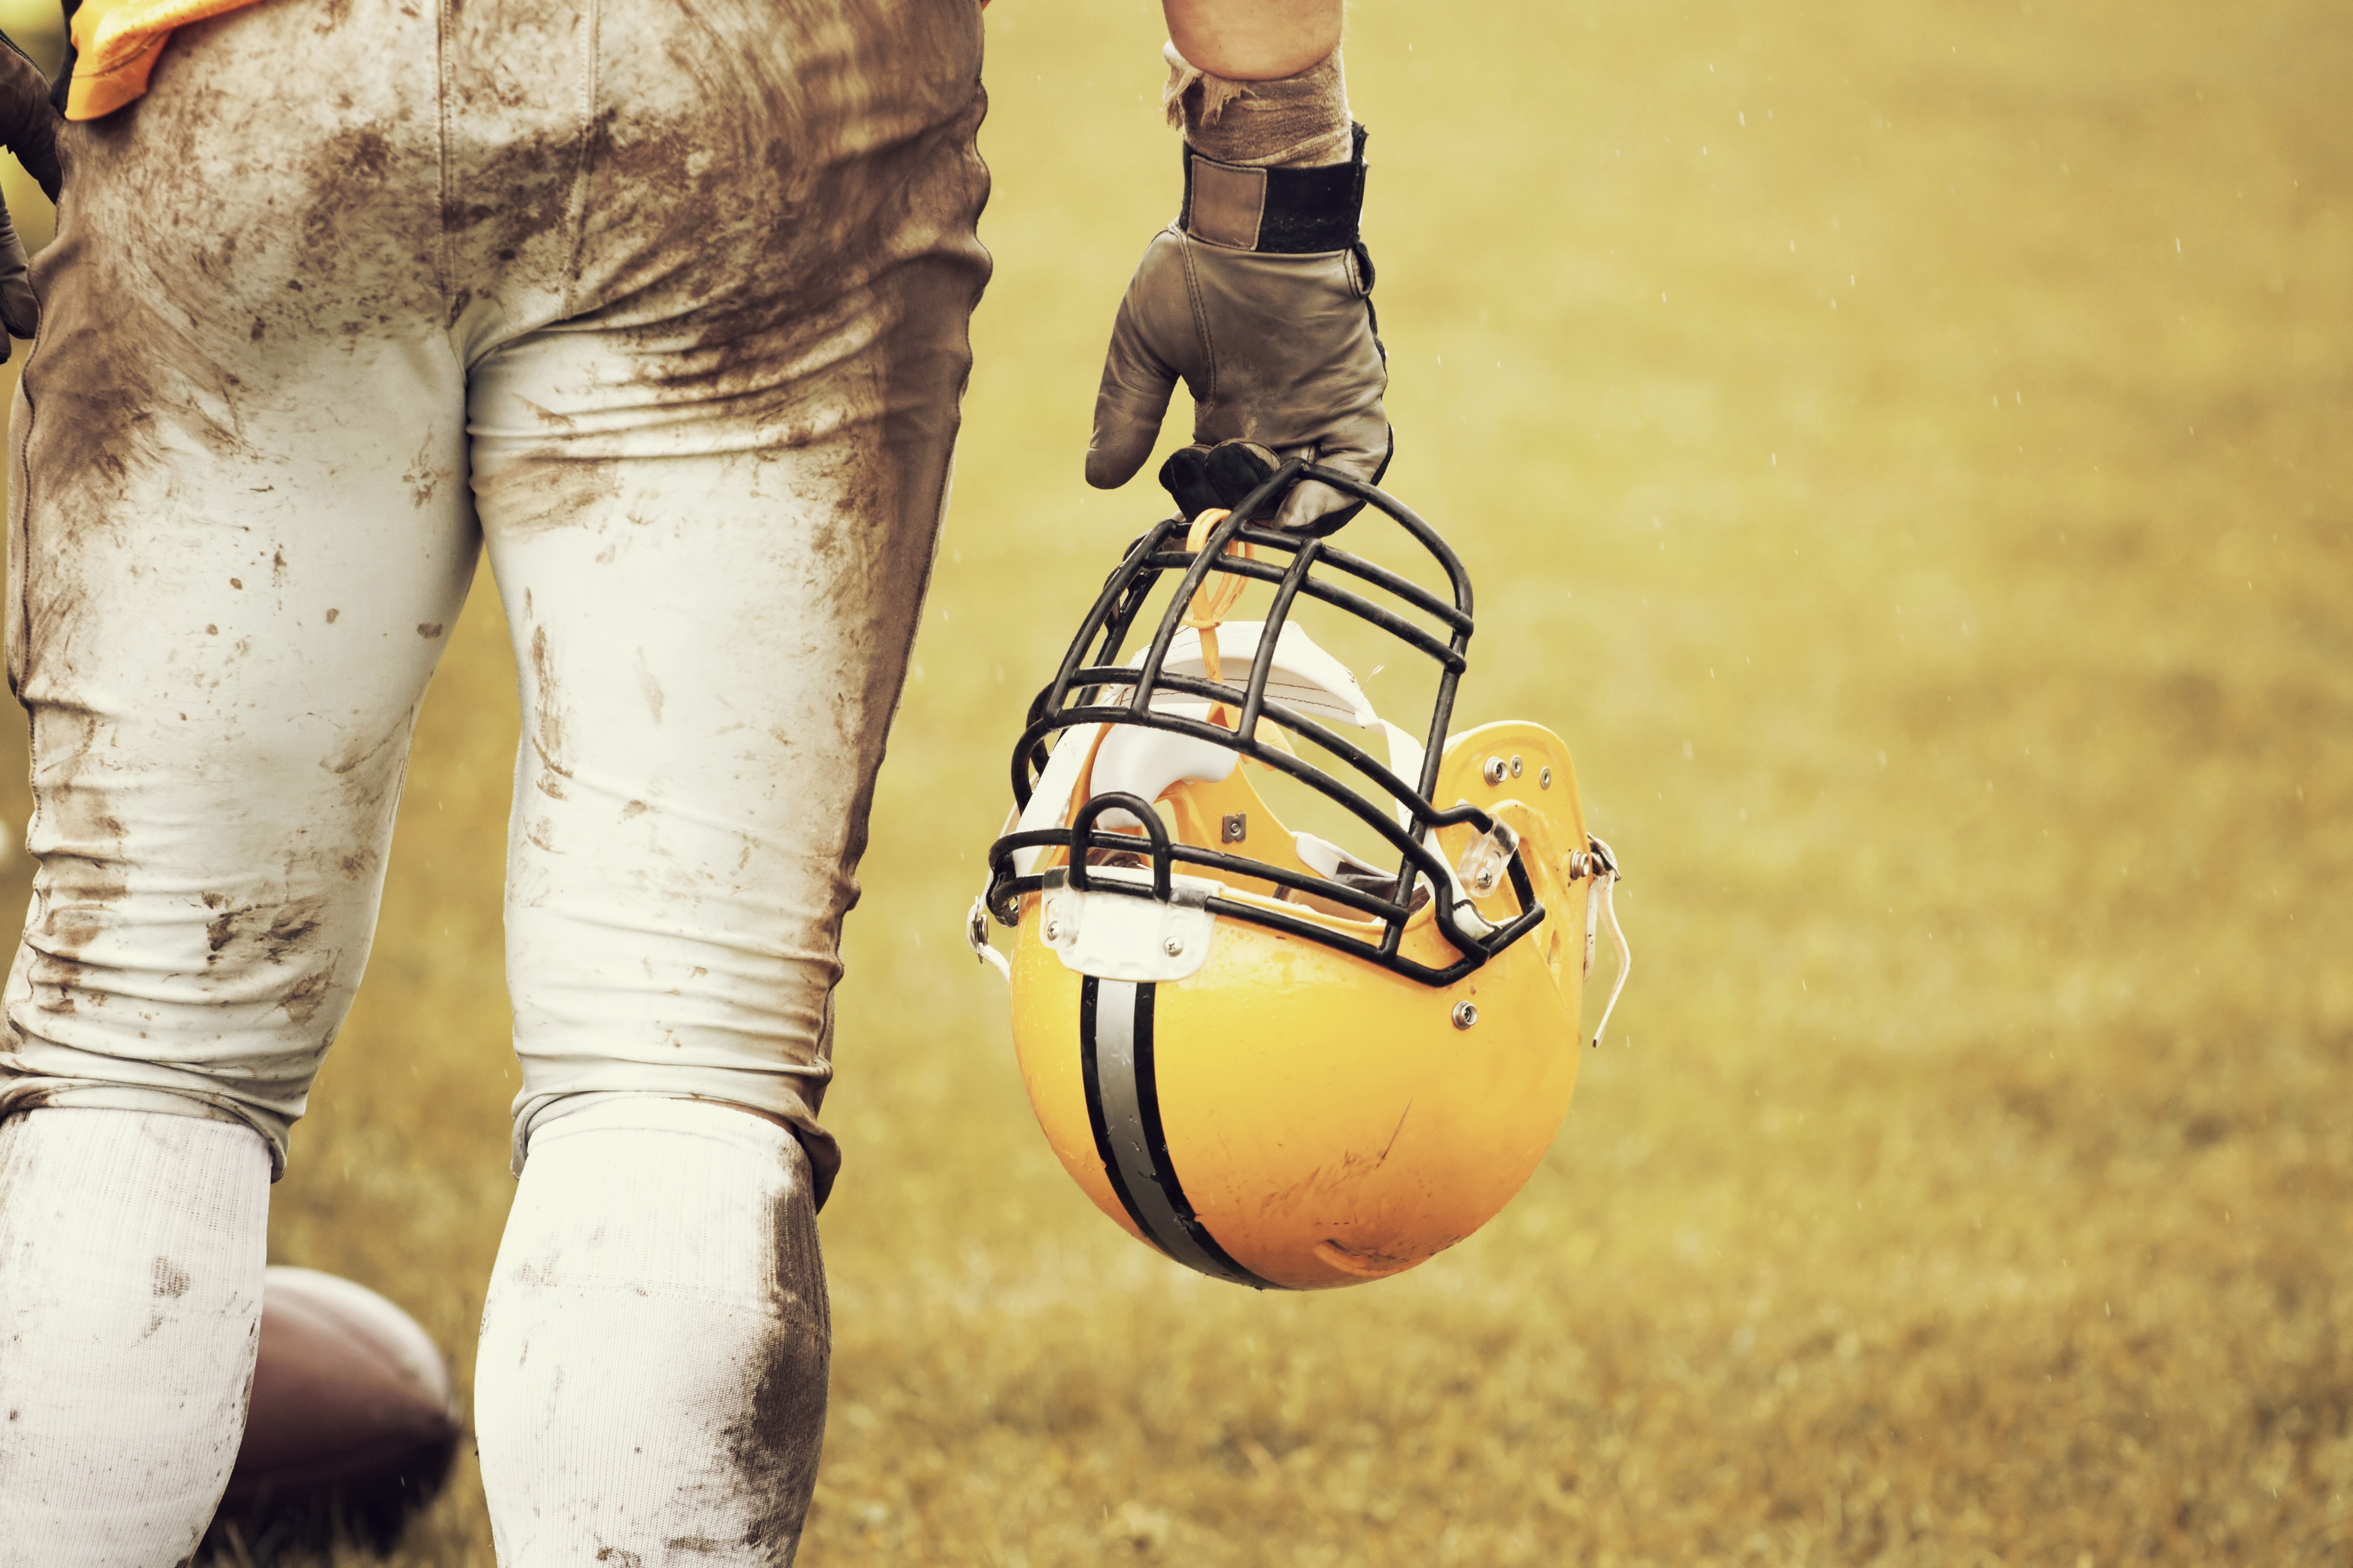 common football injuries including overheating